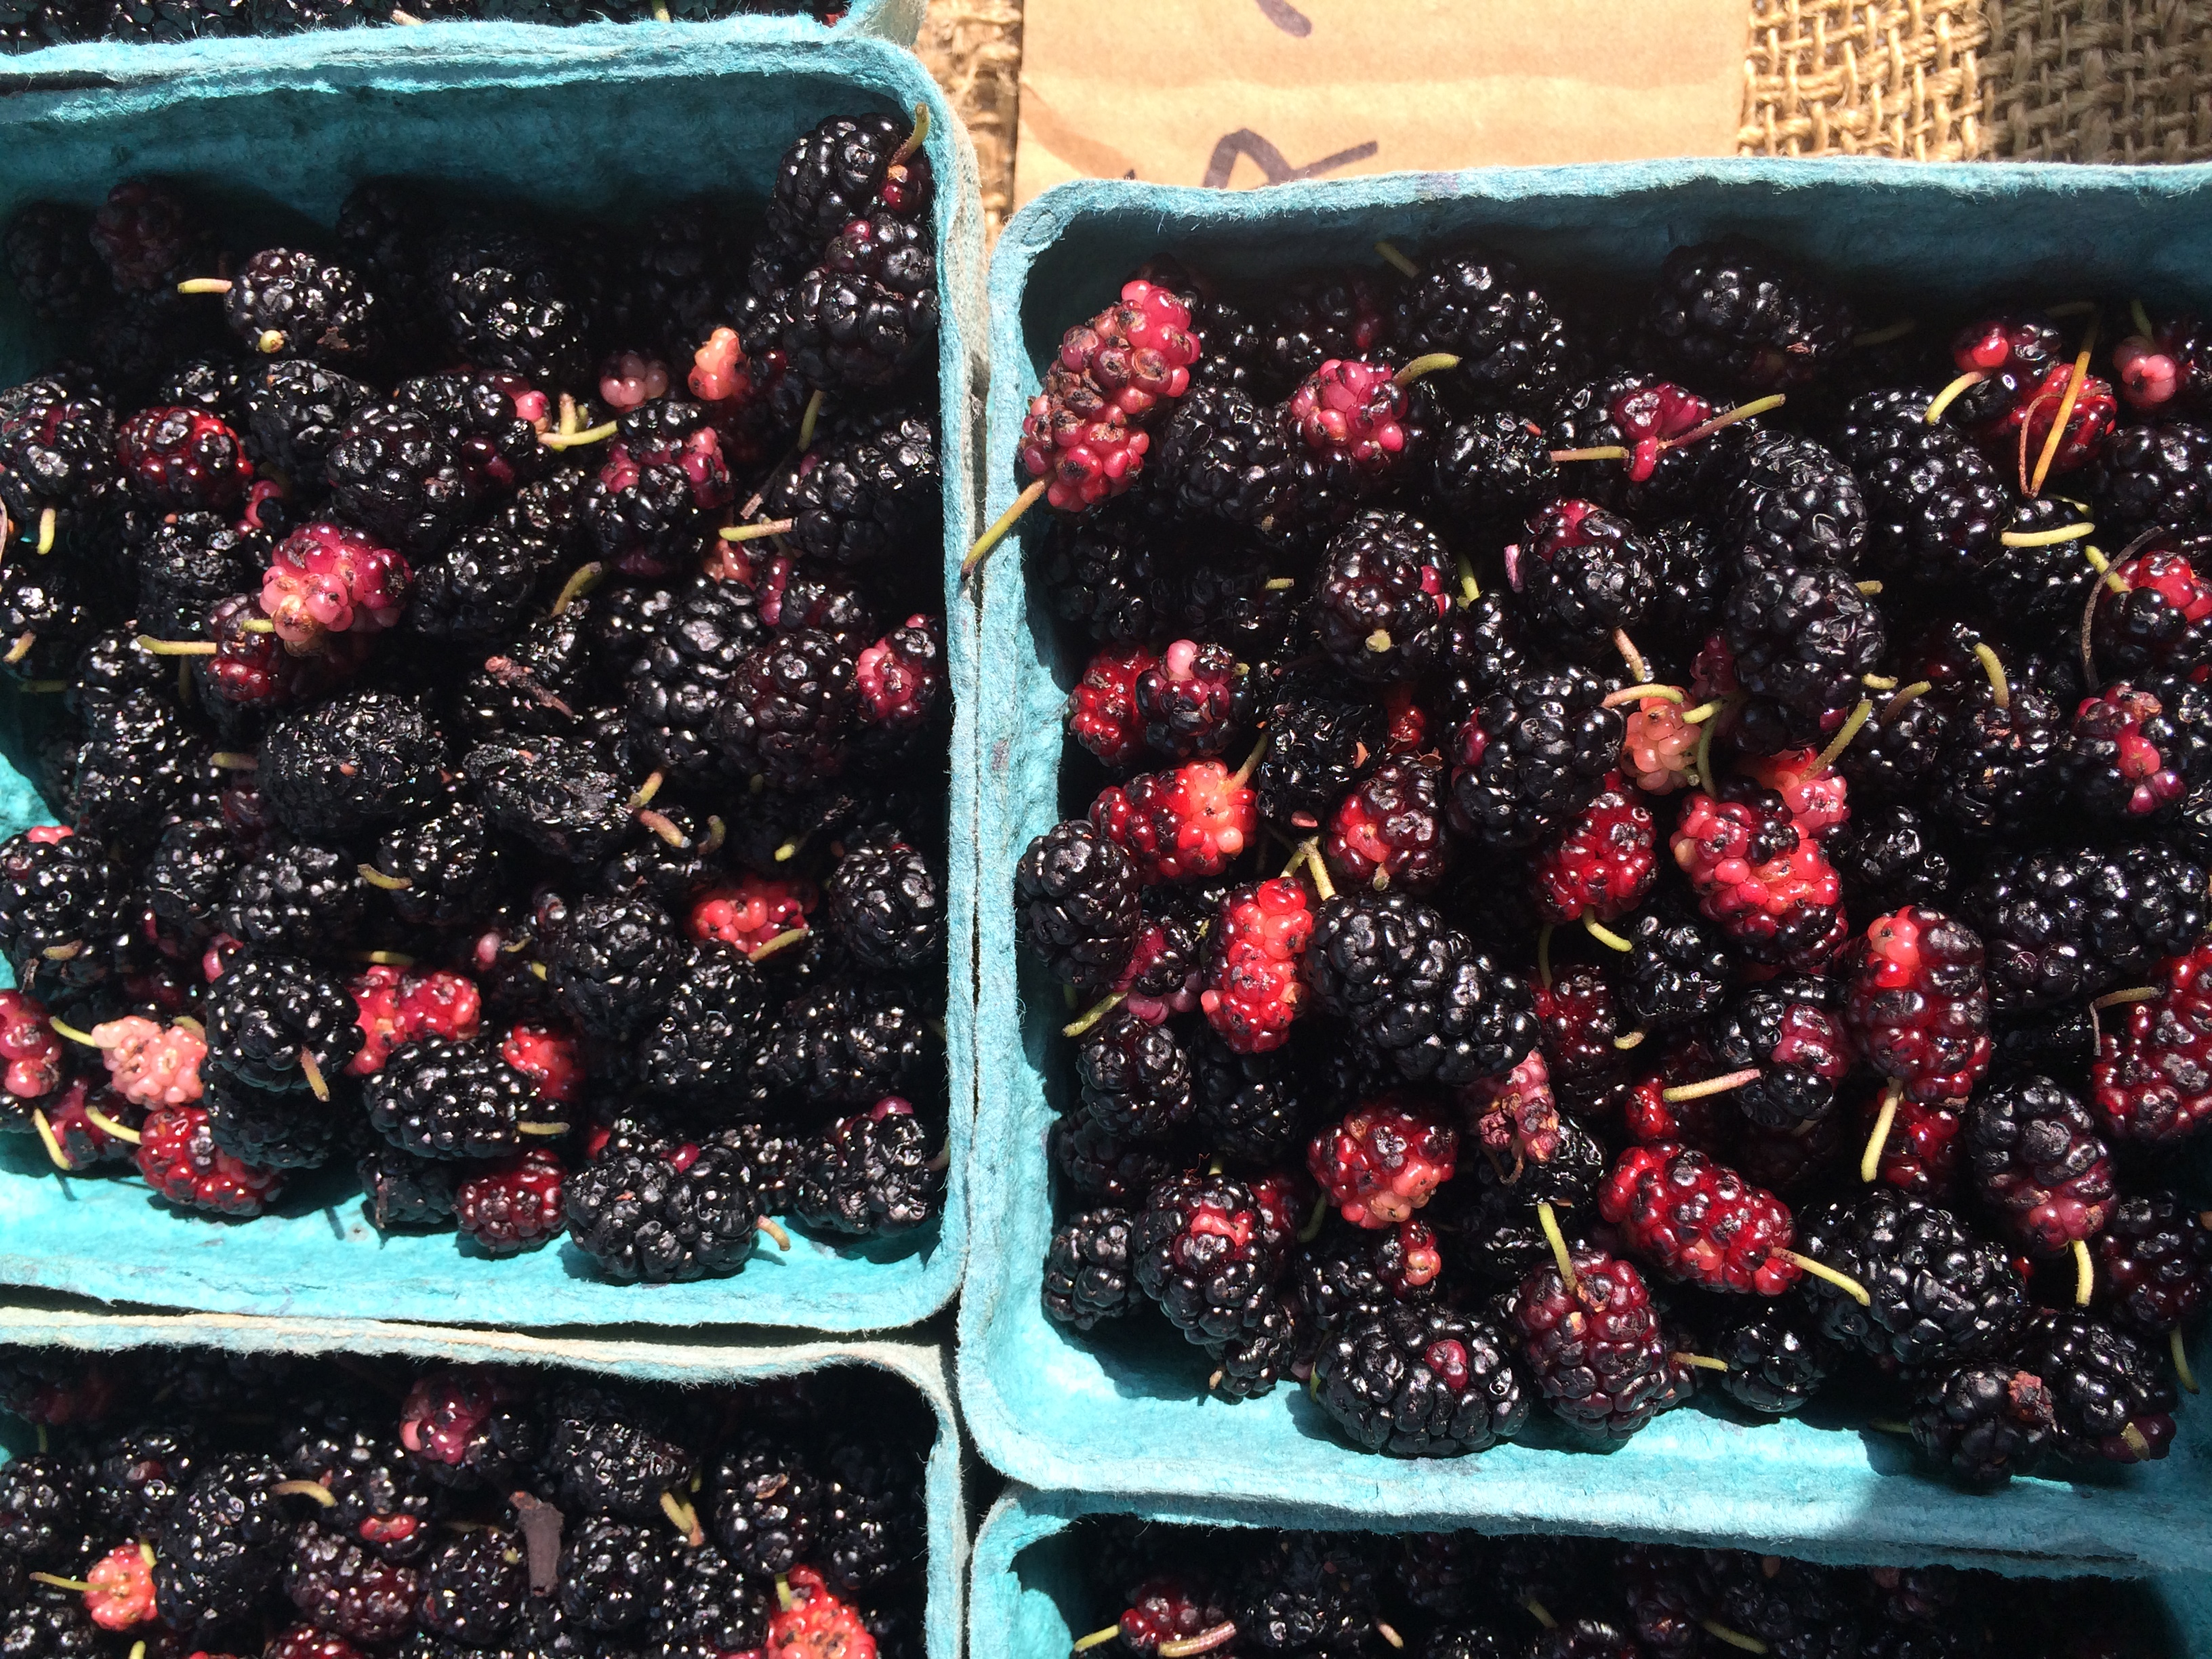 Mulberries from Moon Shadows Farm at Easton Farmers' Market.